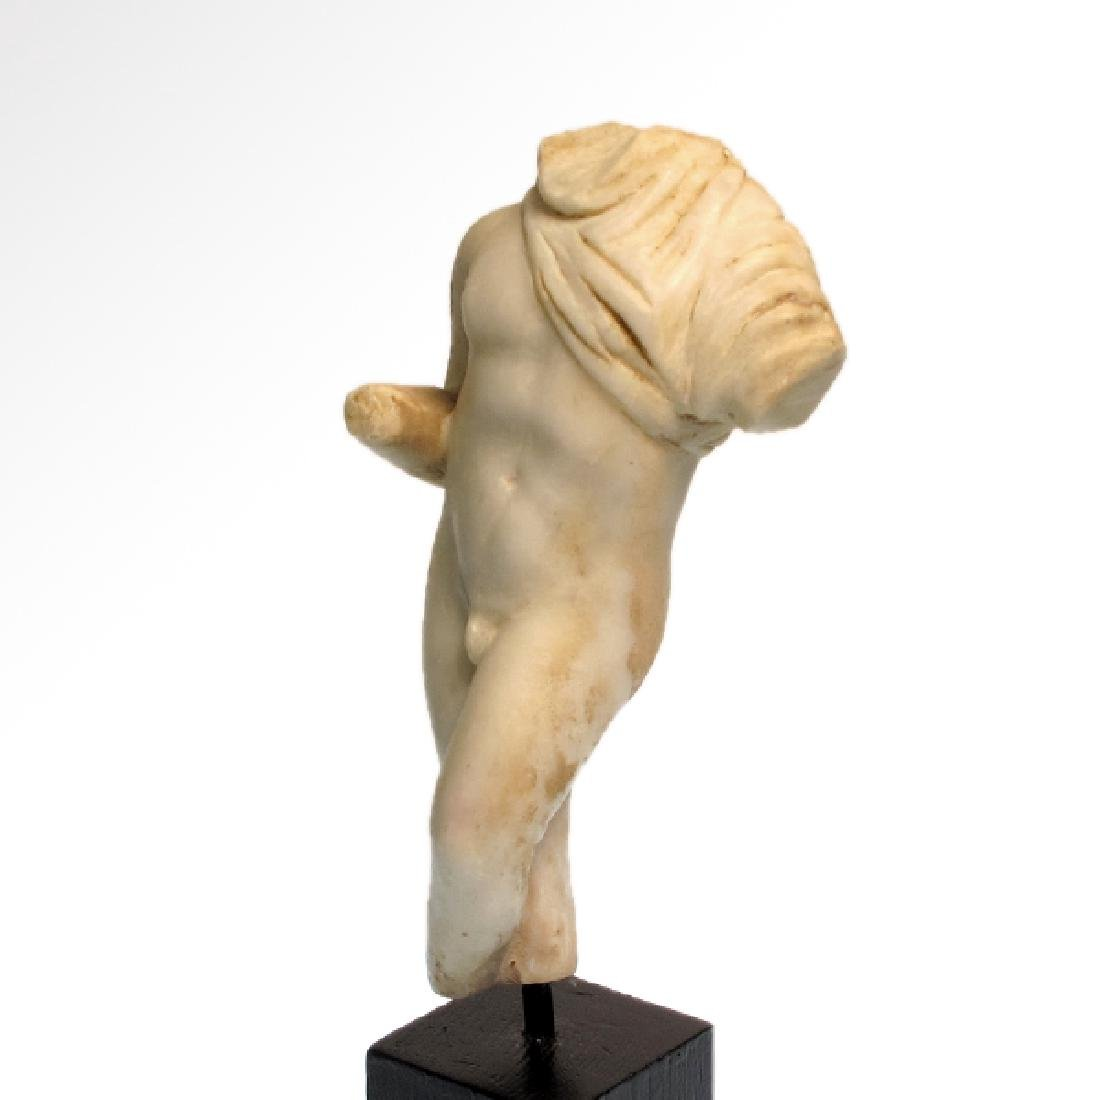 Roman Marble Figure of a Nude Young Man, c. 2nd-3rd - 3